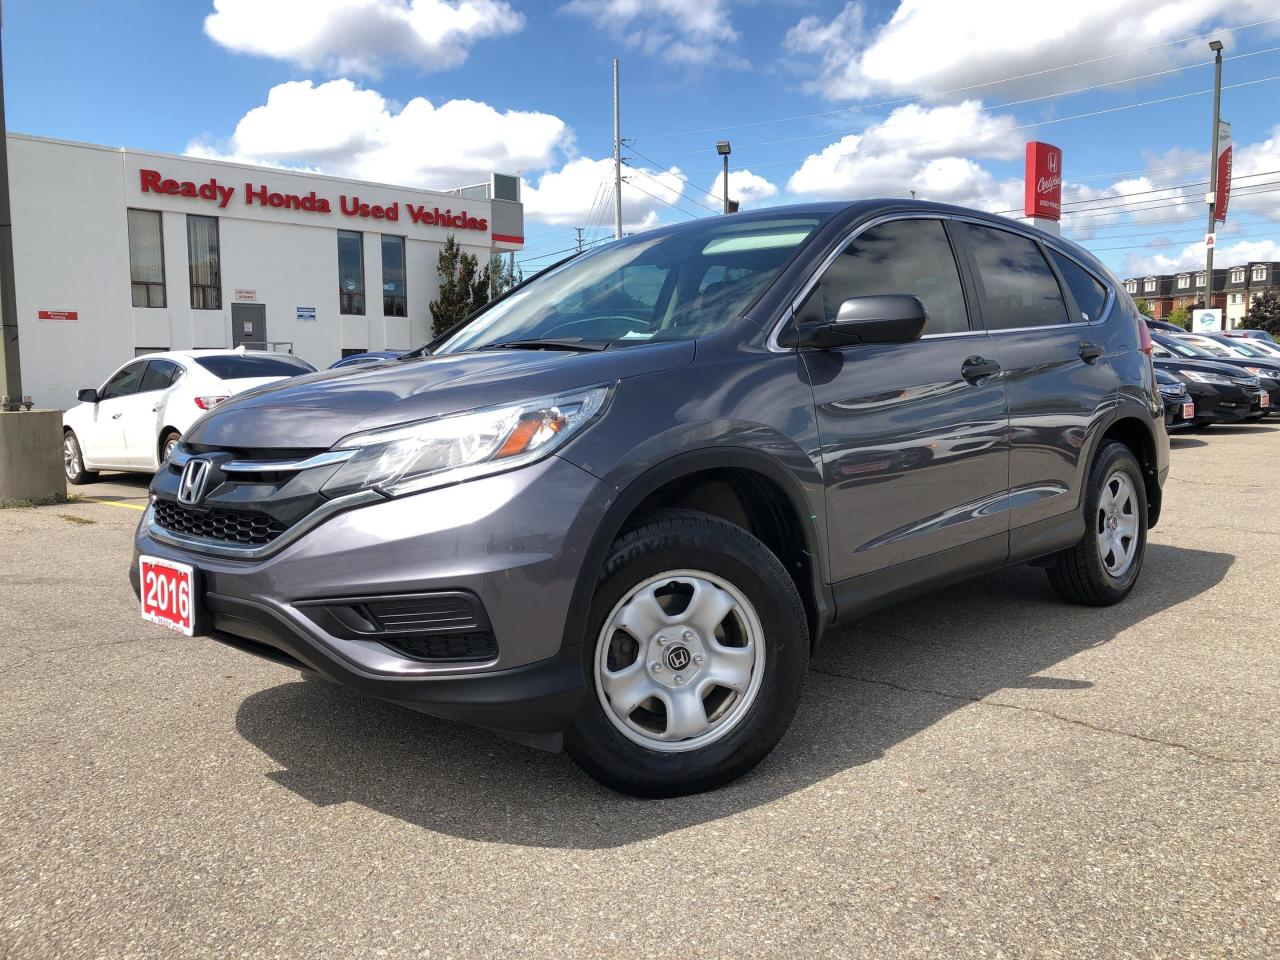 used 2016 honda cr-v lx for sale in mississauga, ontario carpages.ca